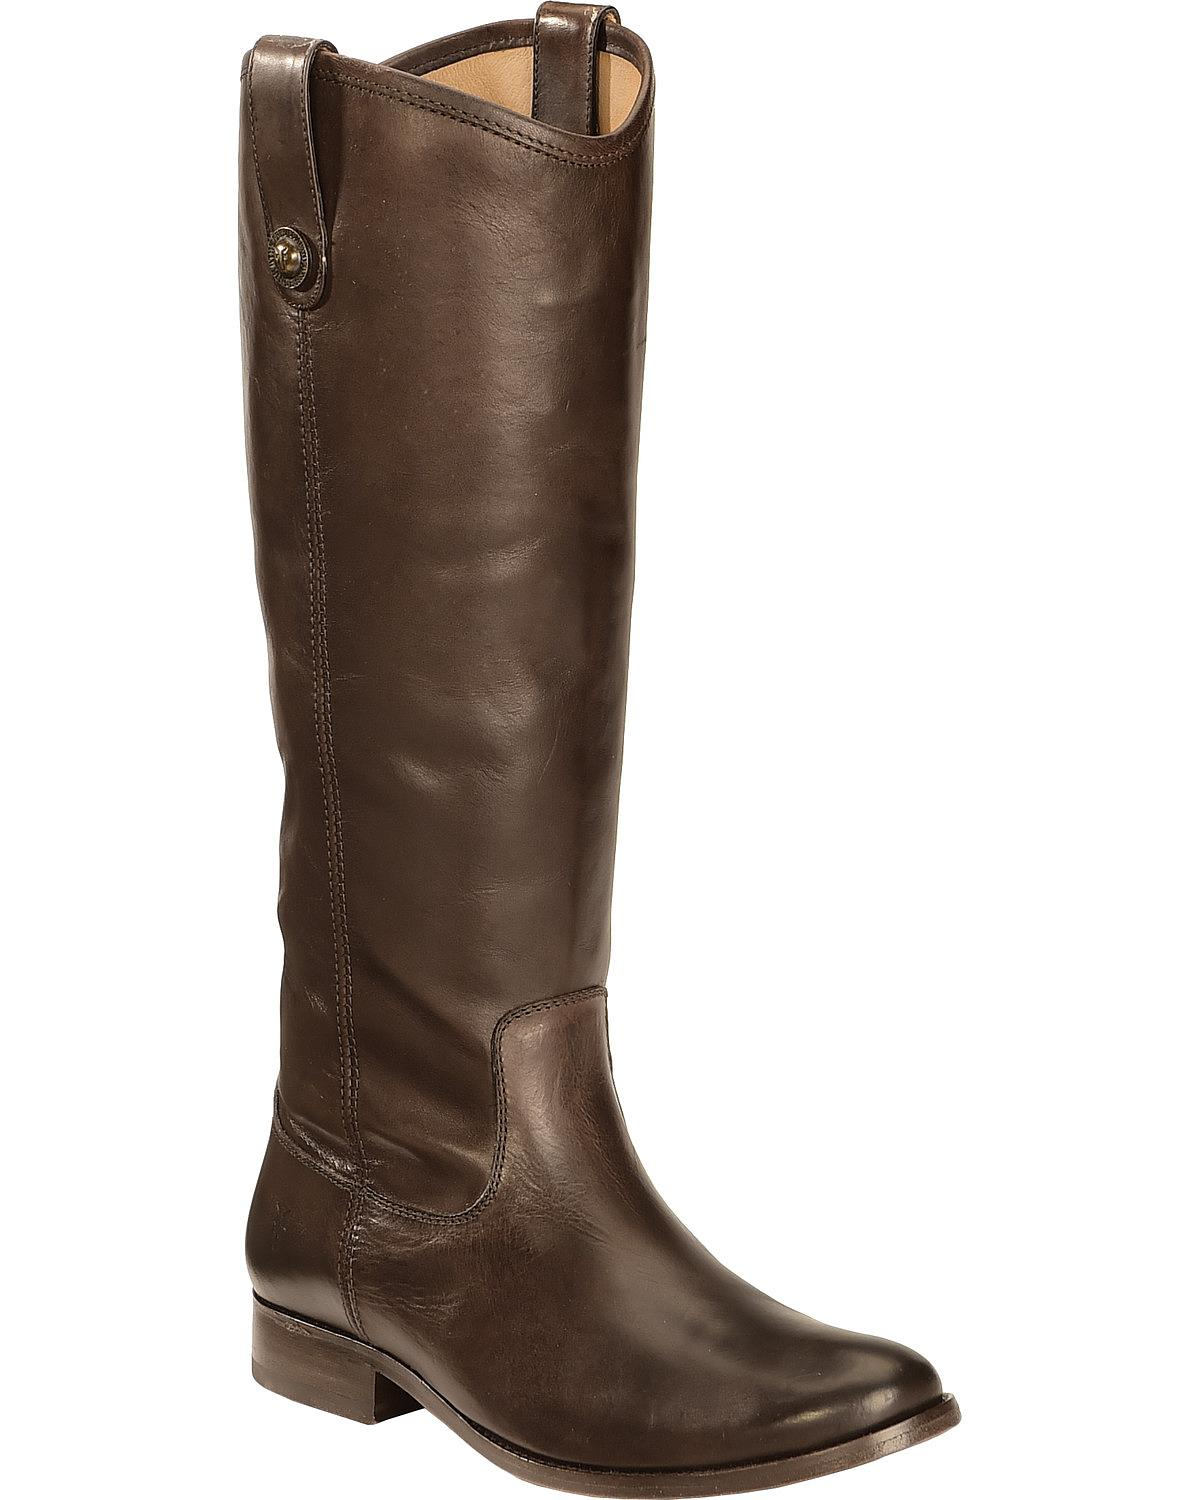 Shop our collection of women's wide-calf boots online at Macy's. Browse the latest trends and view our great selection of boots. Macy's Presents: The Edit- A curated mix of fashion and inspiration Check It Out. Karen Scott Deliee Wide-Calf Riding Boots, Created for Macy's.